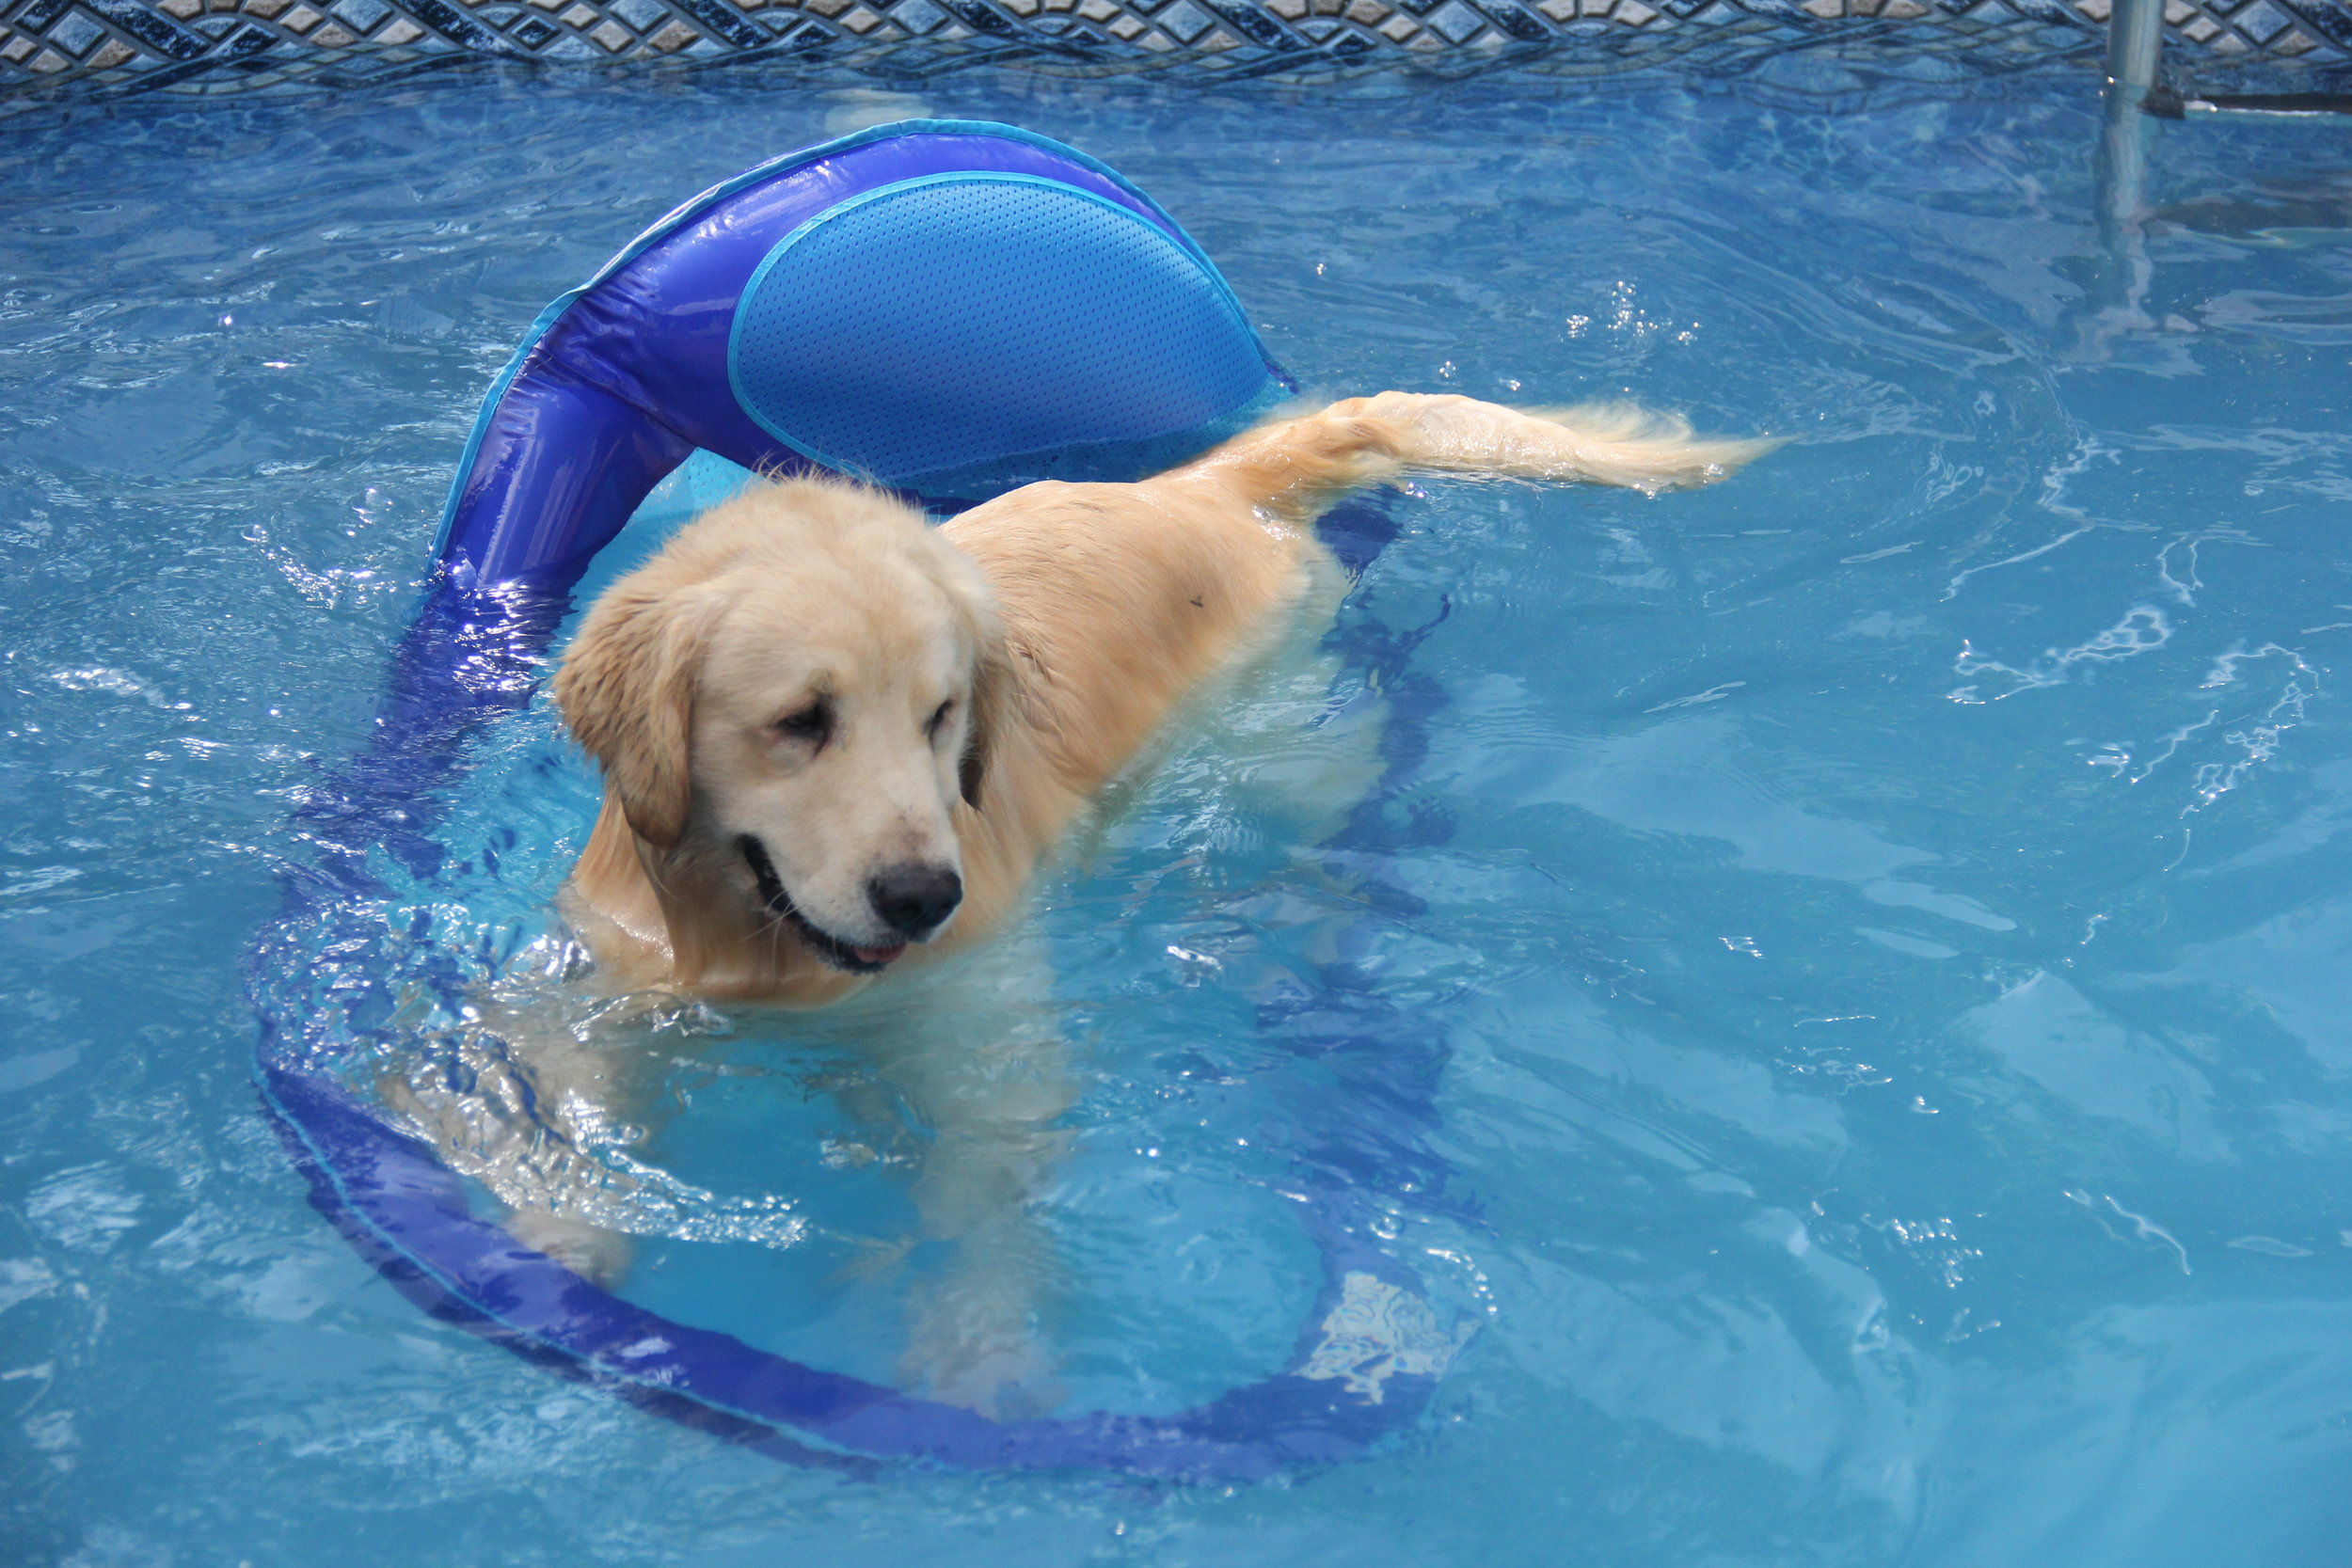 Bailey loves to float in the pool